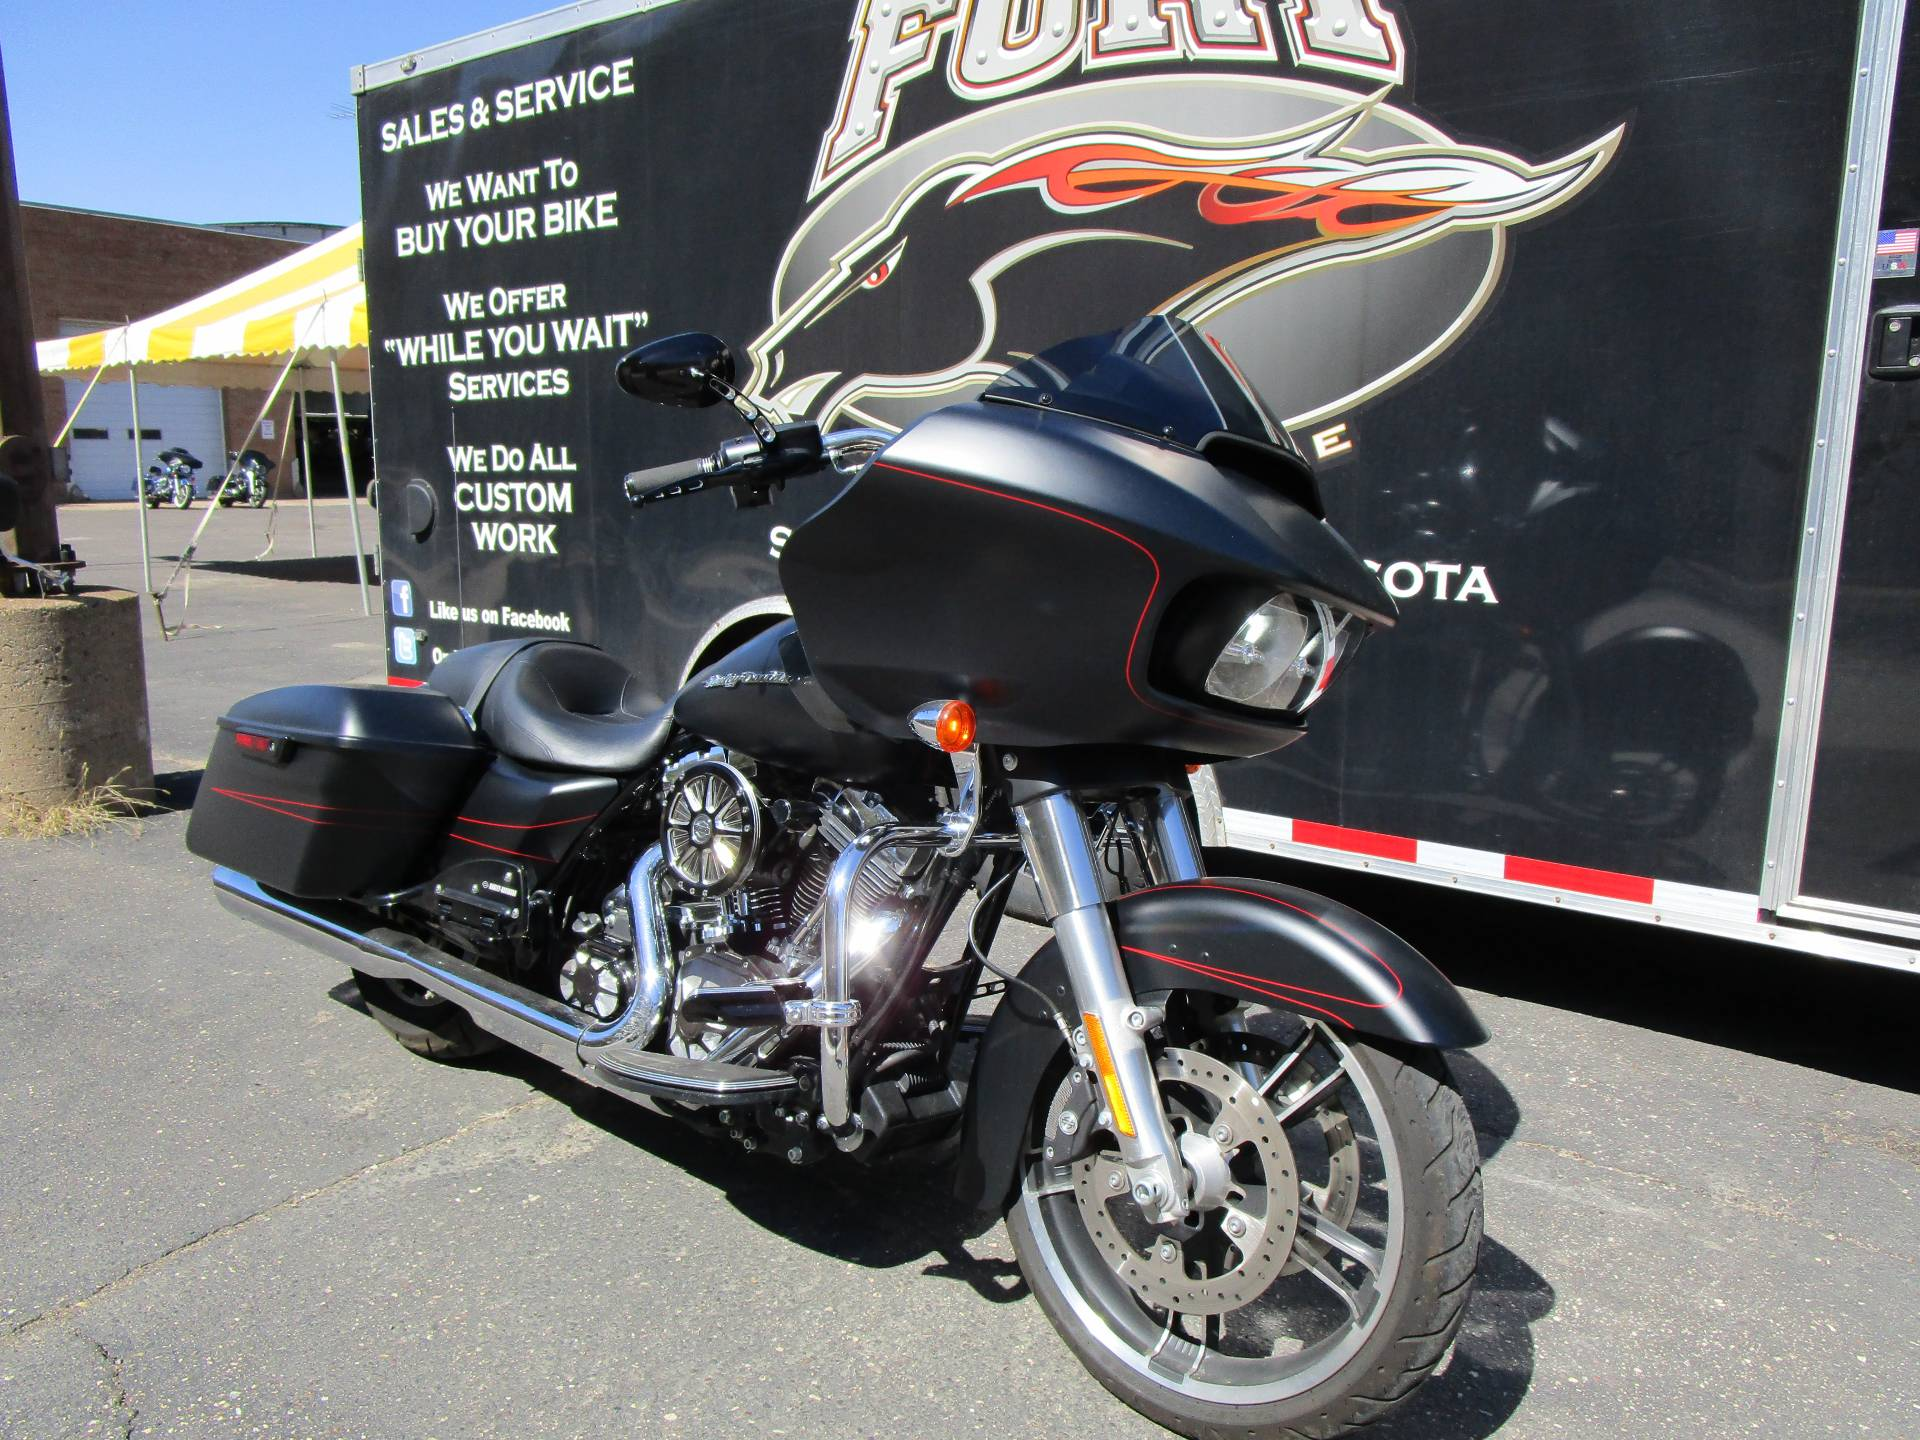 2015 Harley-Davidson FLTRXS ROAD GLIDE SPECIAL in South Saint Paul, Minnesota - Photo 2